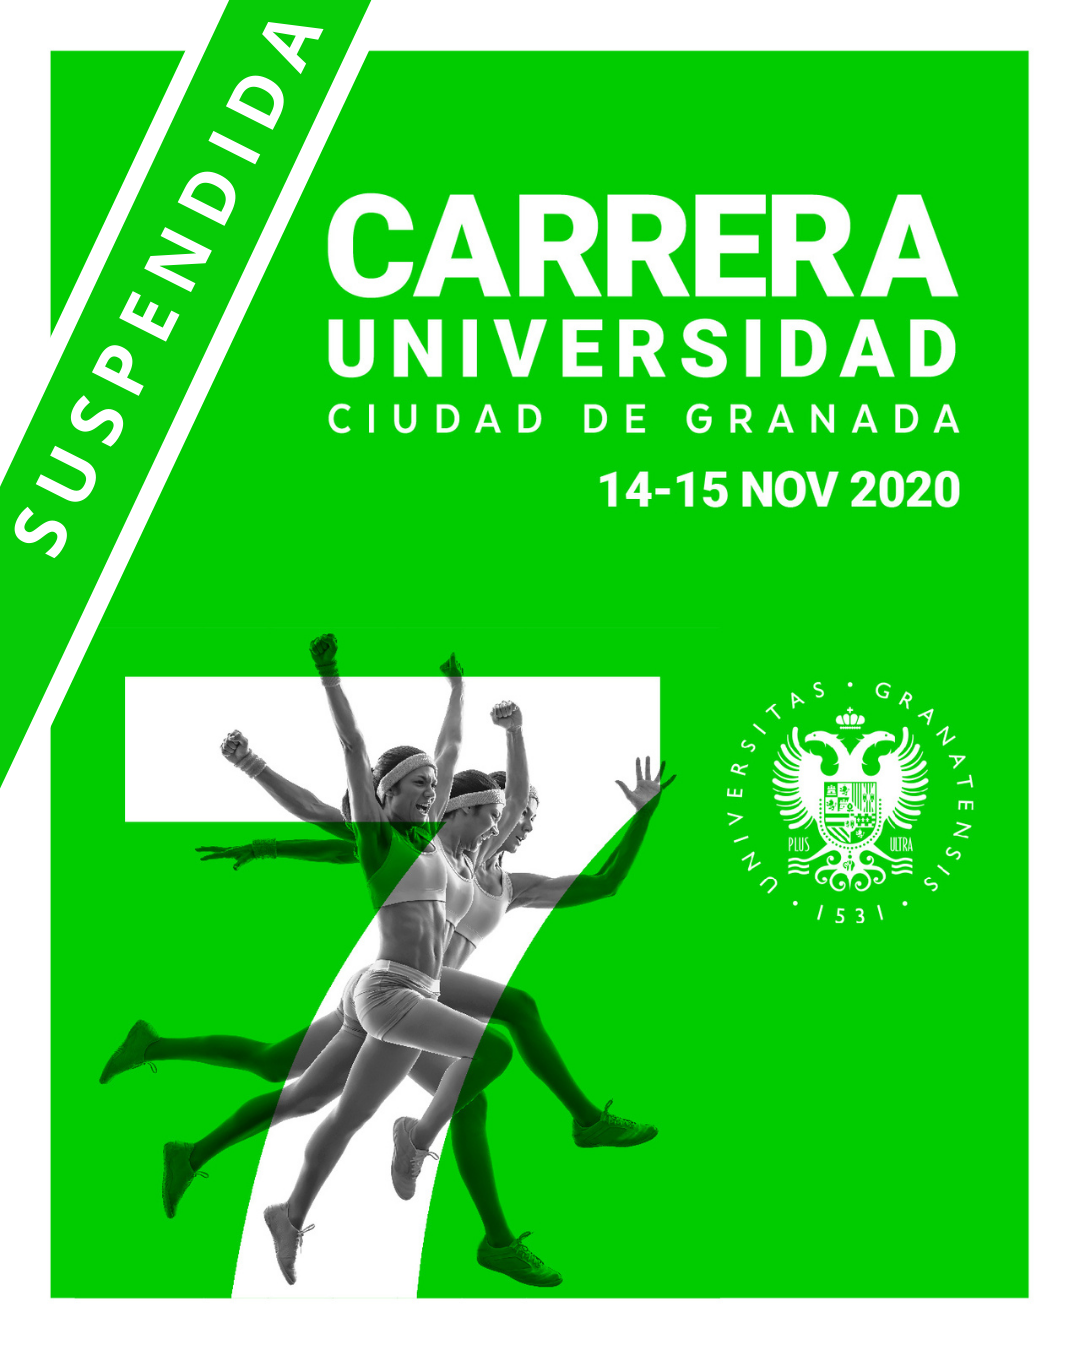 Carrera Universidad